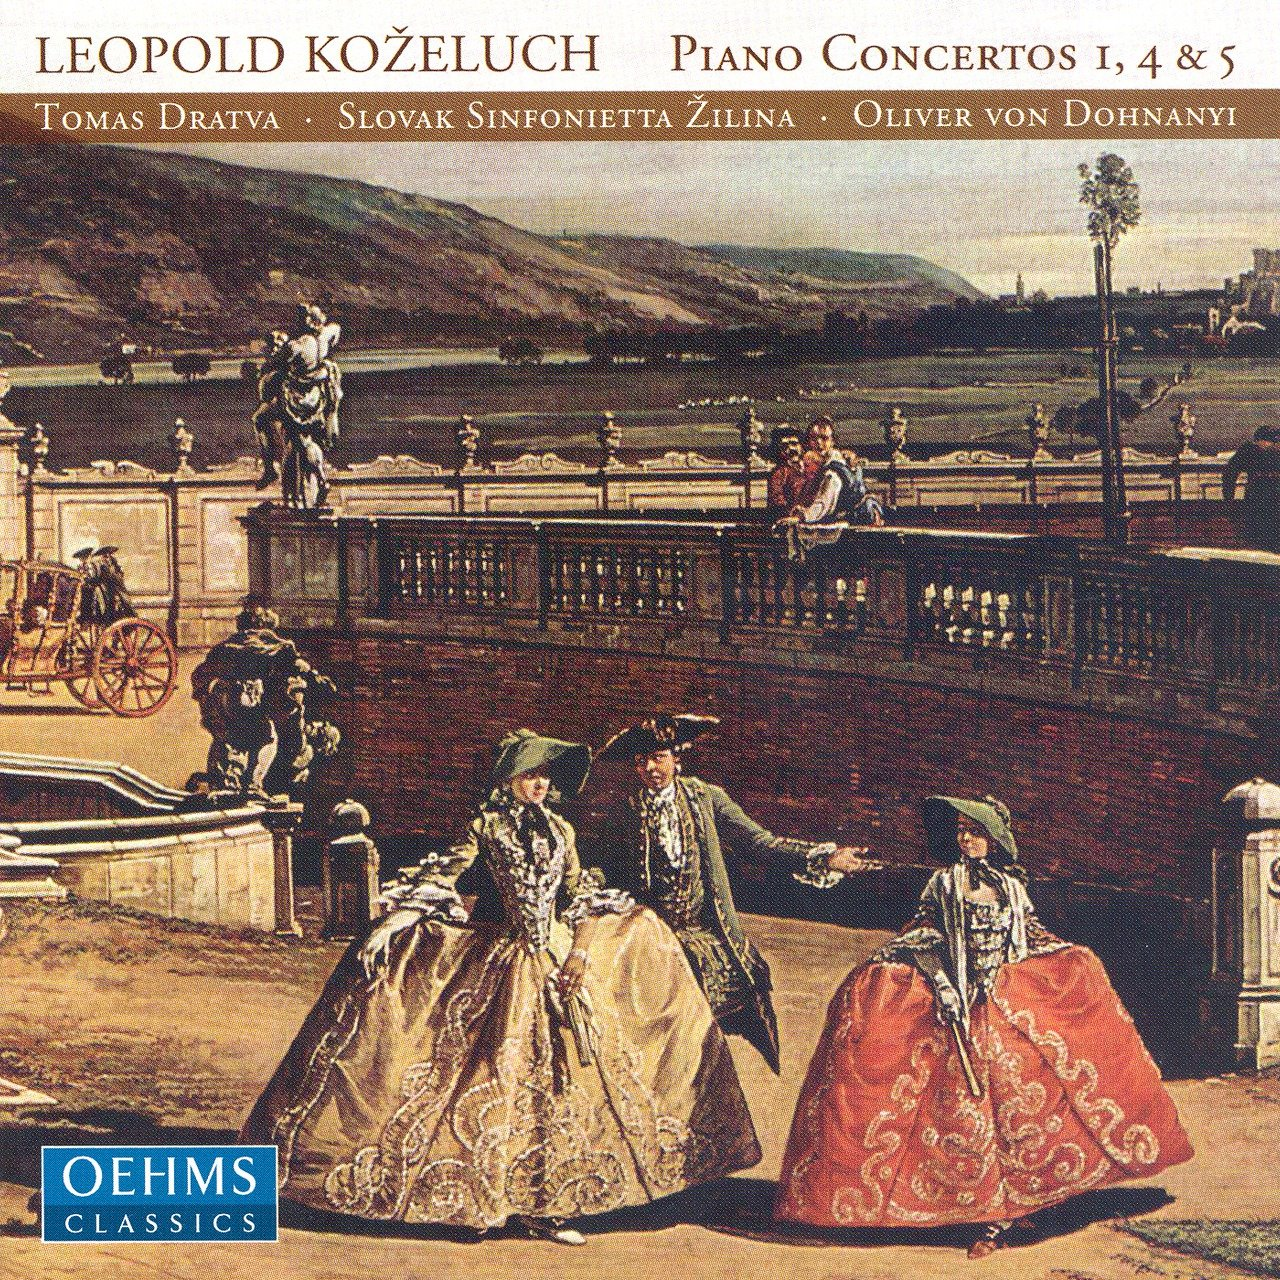 Kozeluch: Piano Concertos Nos. 1, 4 and 5